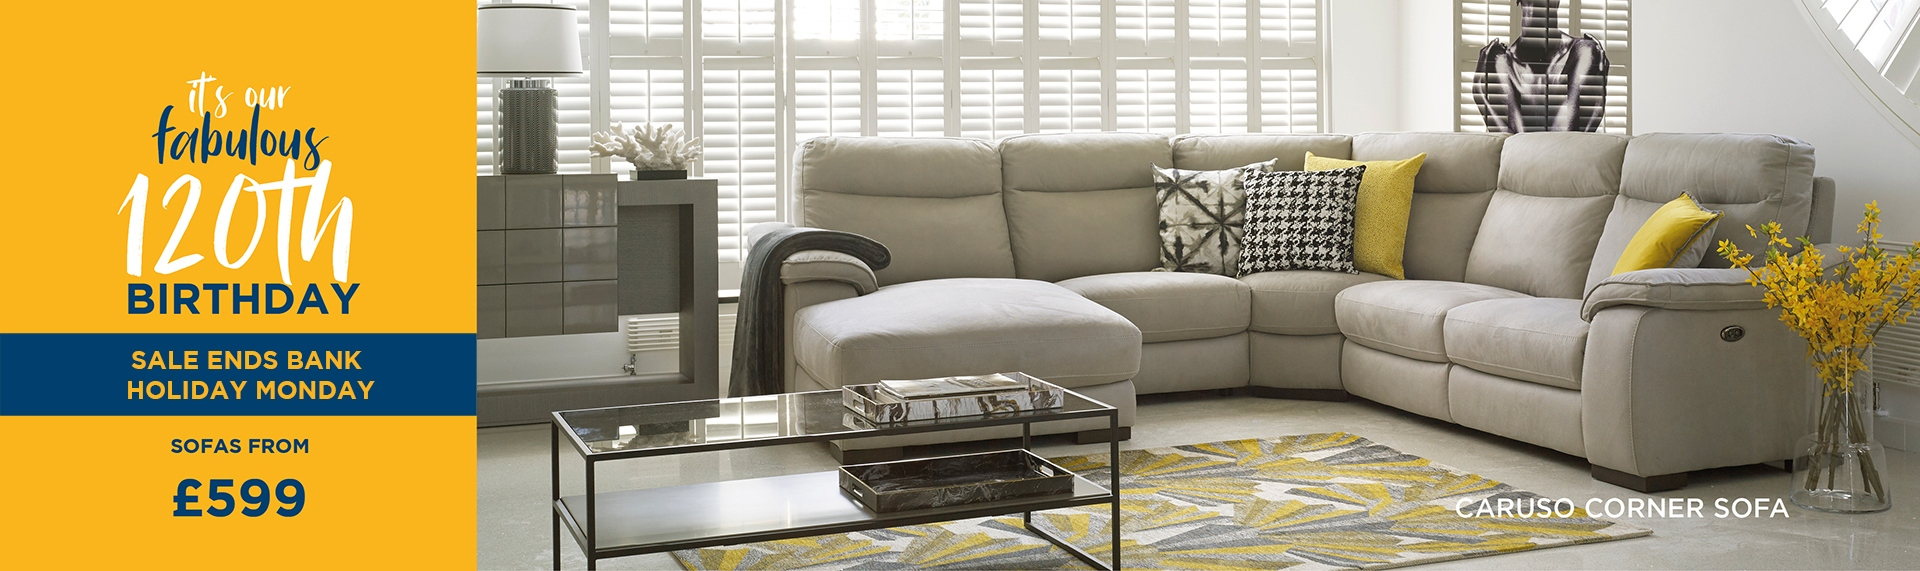 Caruso Sofa Collection